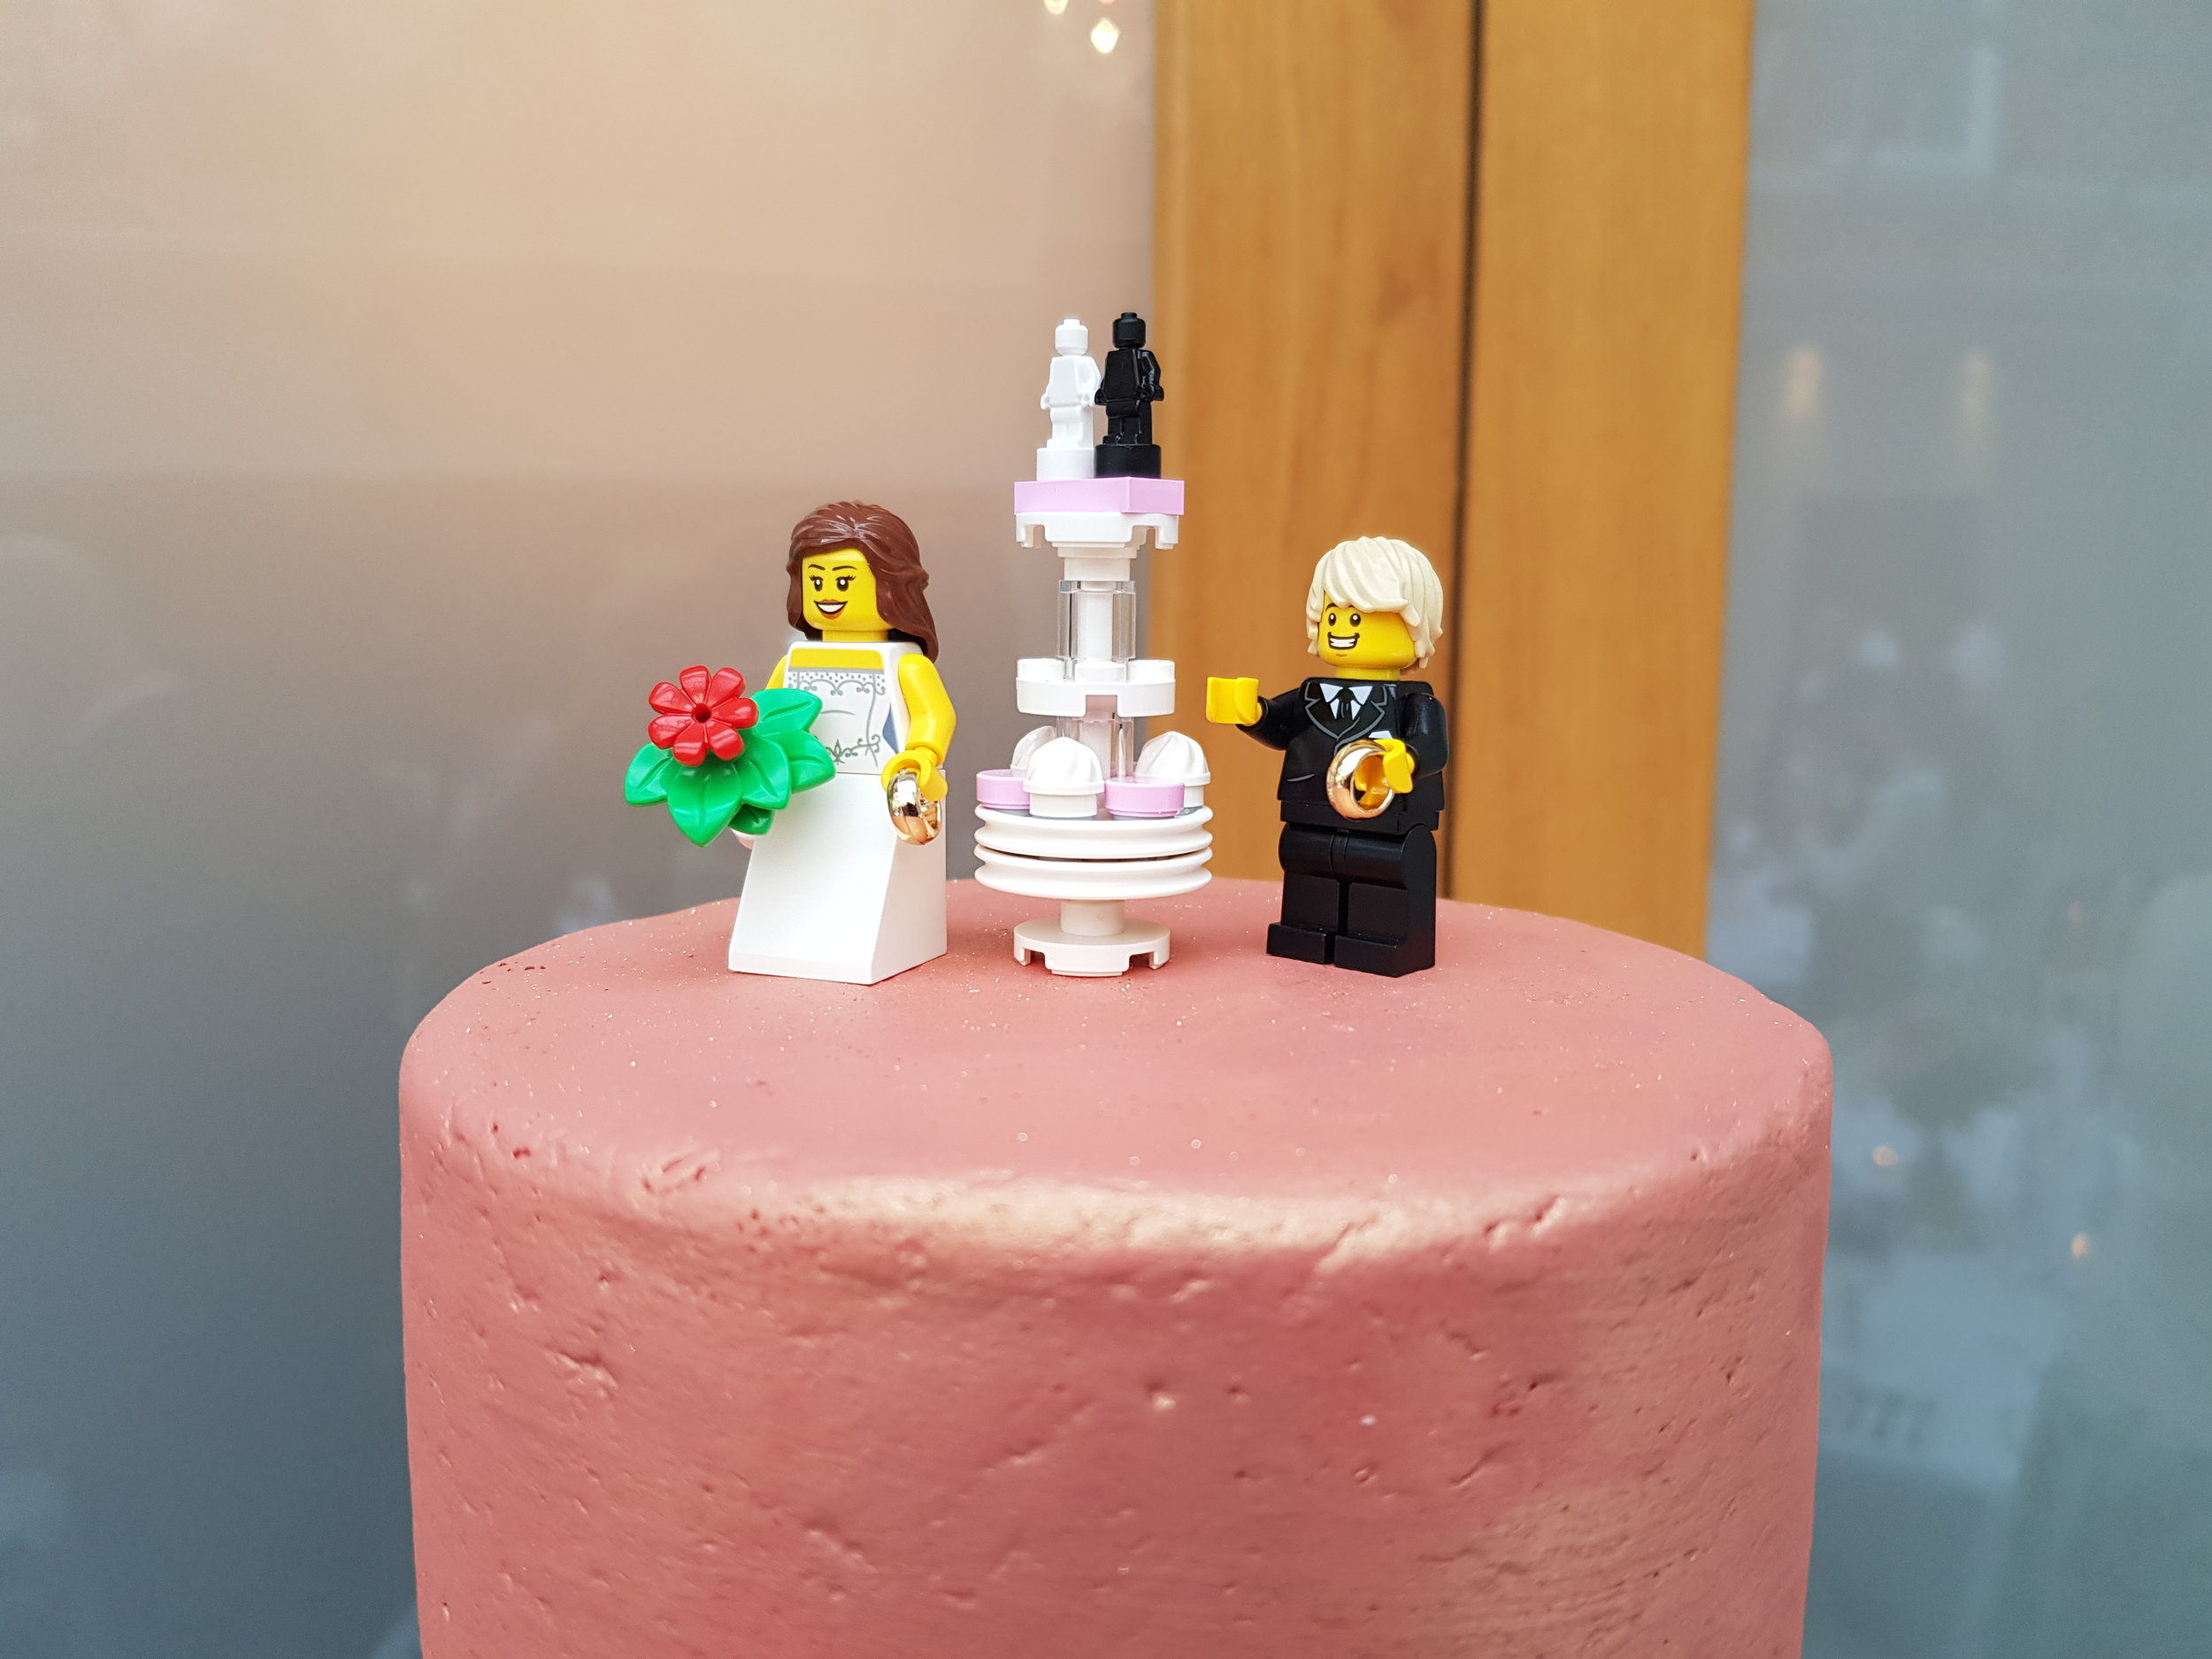 Wedding photo ideas: Lego bride and groom wedding cake topper